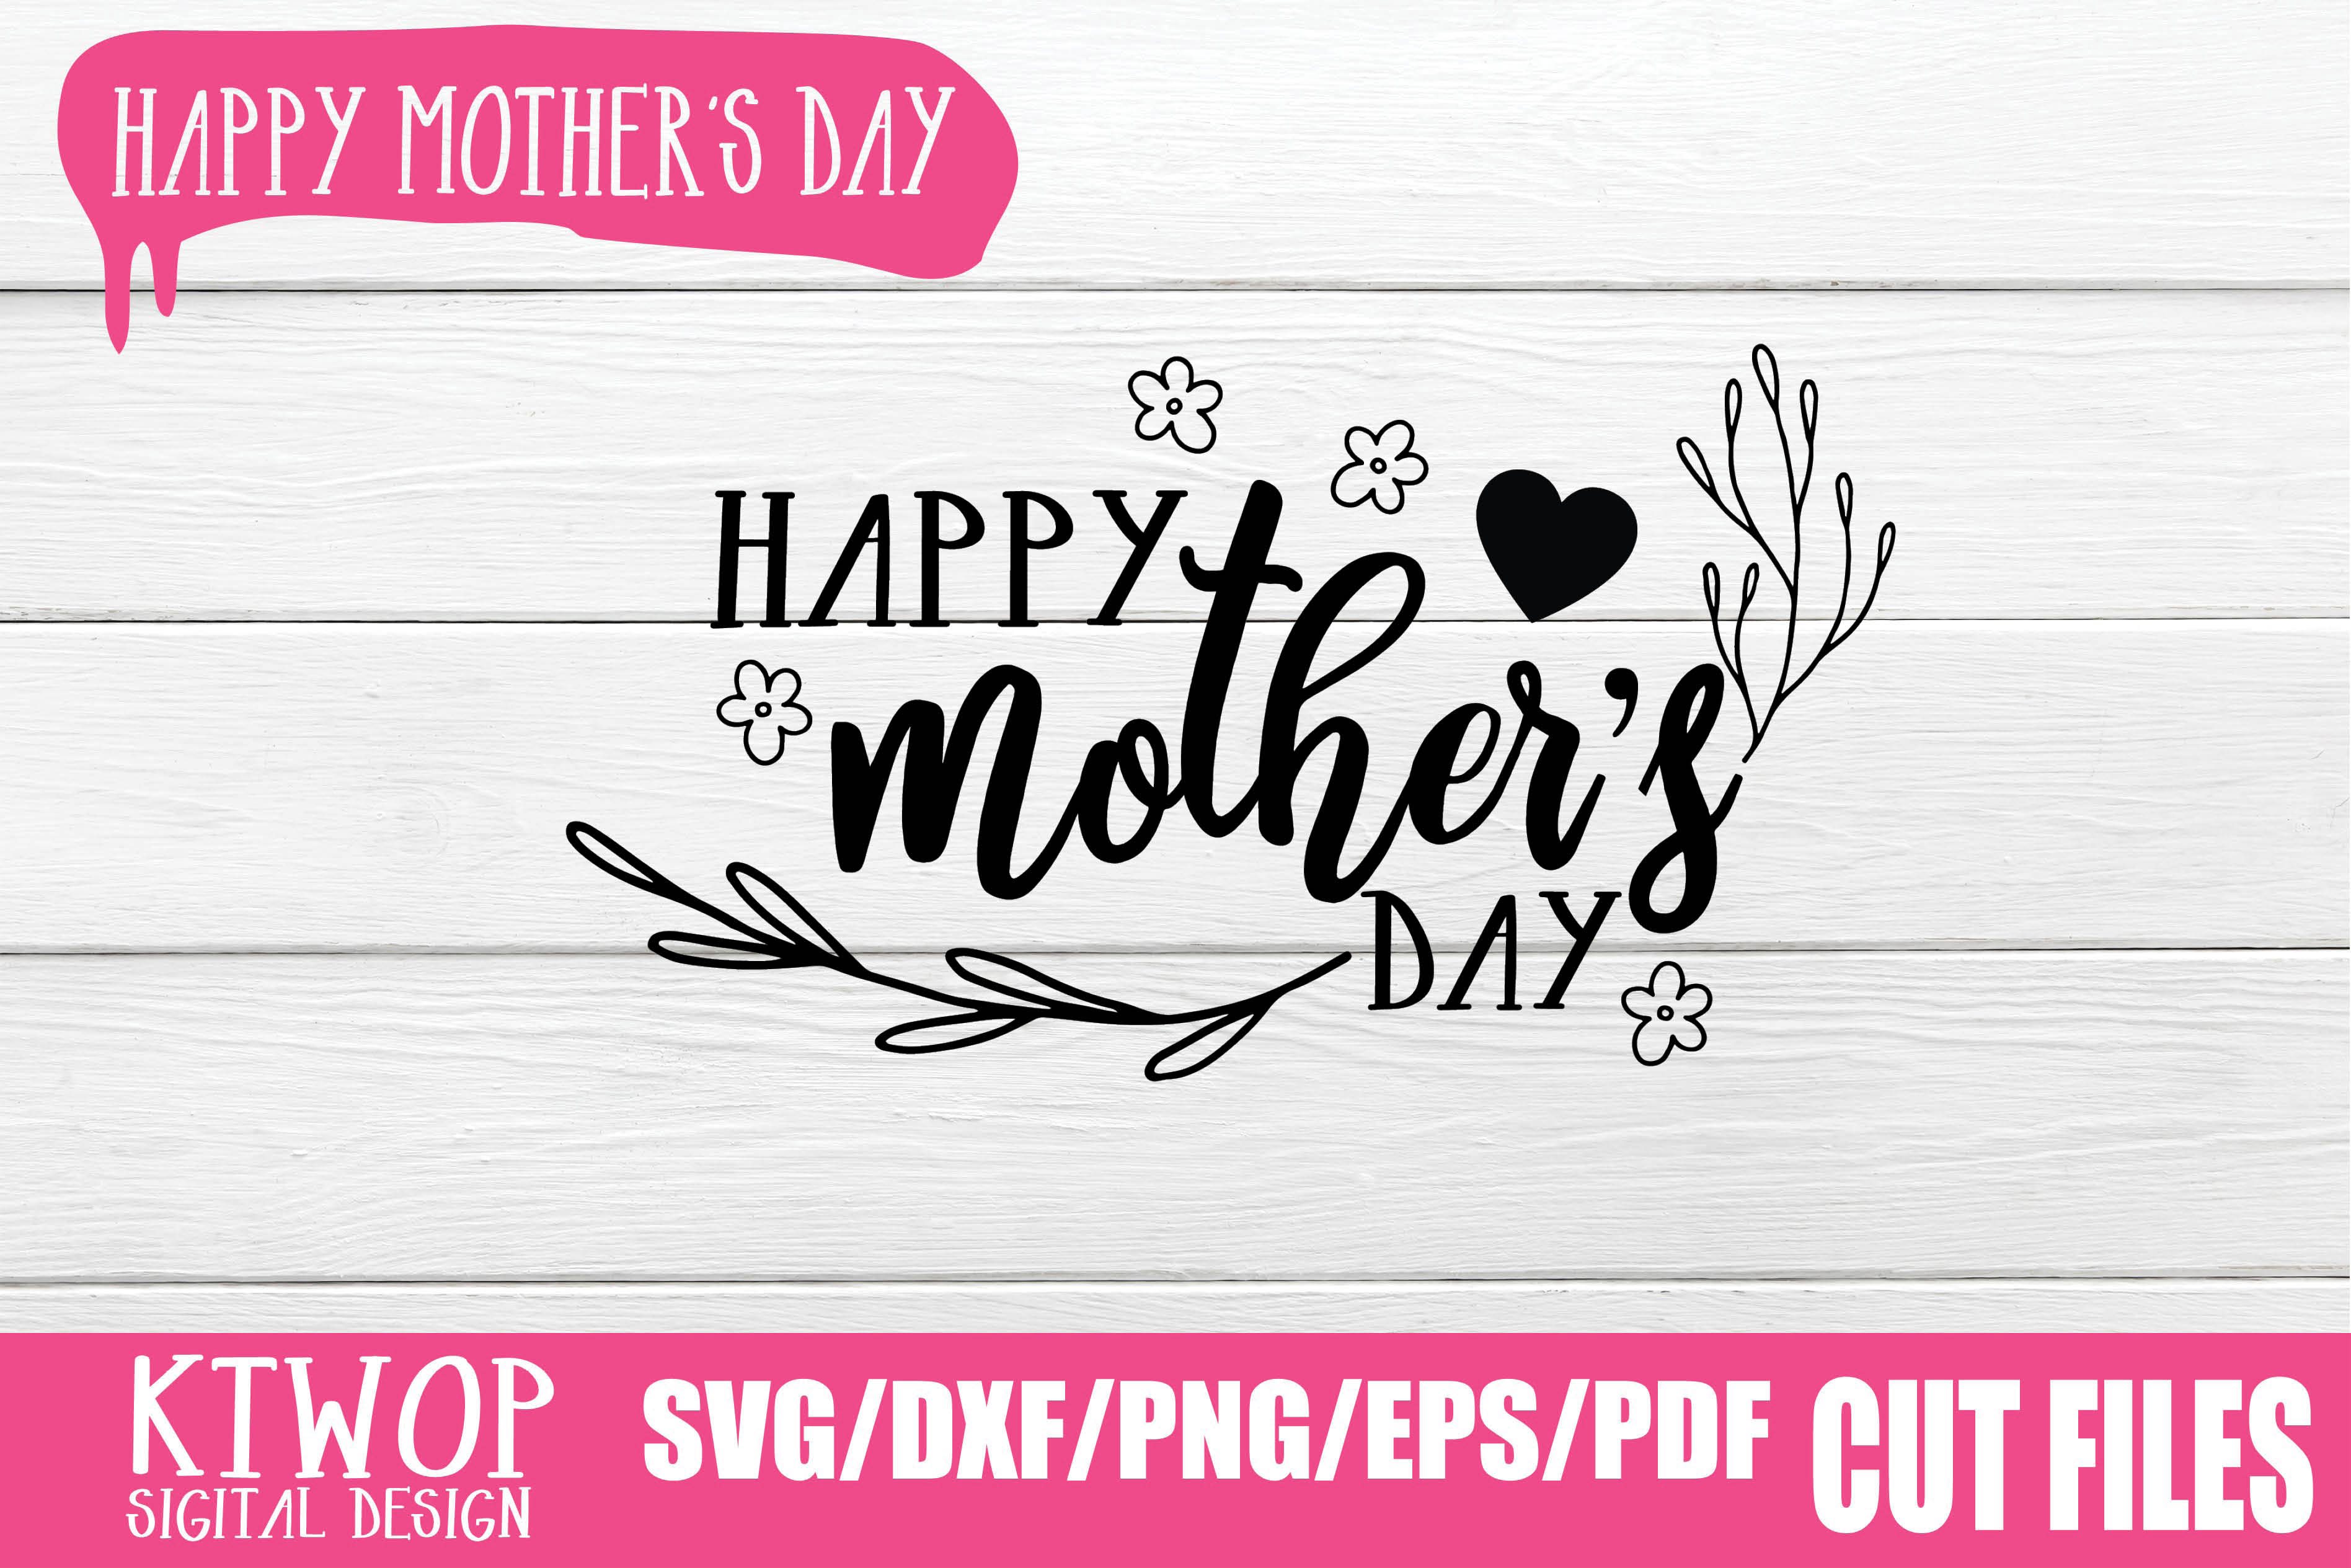 Download Free Happy Mother S Day Graphic By Ktwop Creative Fabrica for Cricut Explore, Silhouette and other cutting machines.